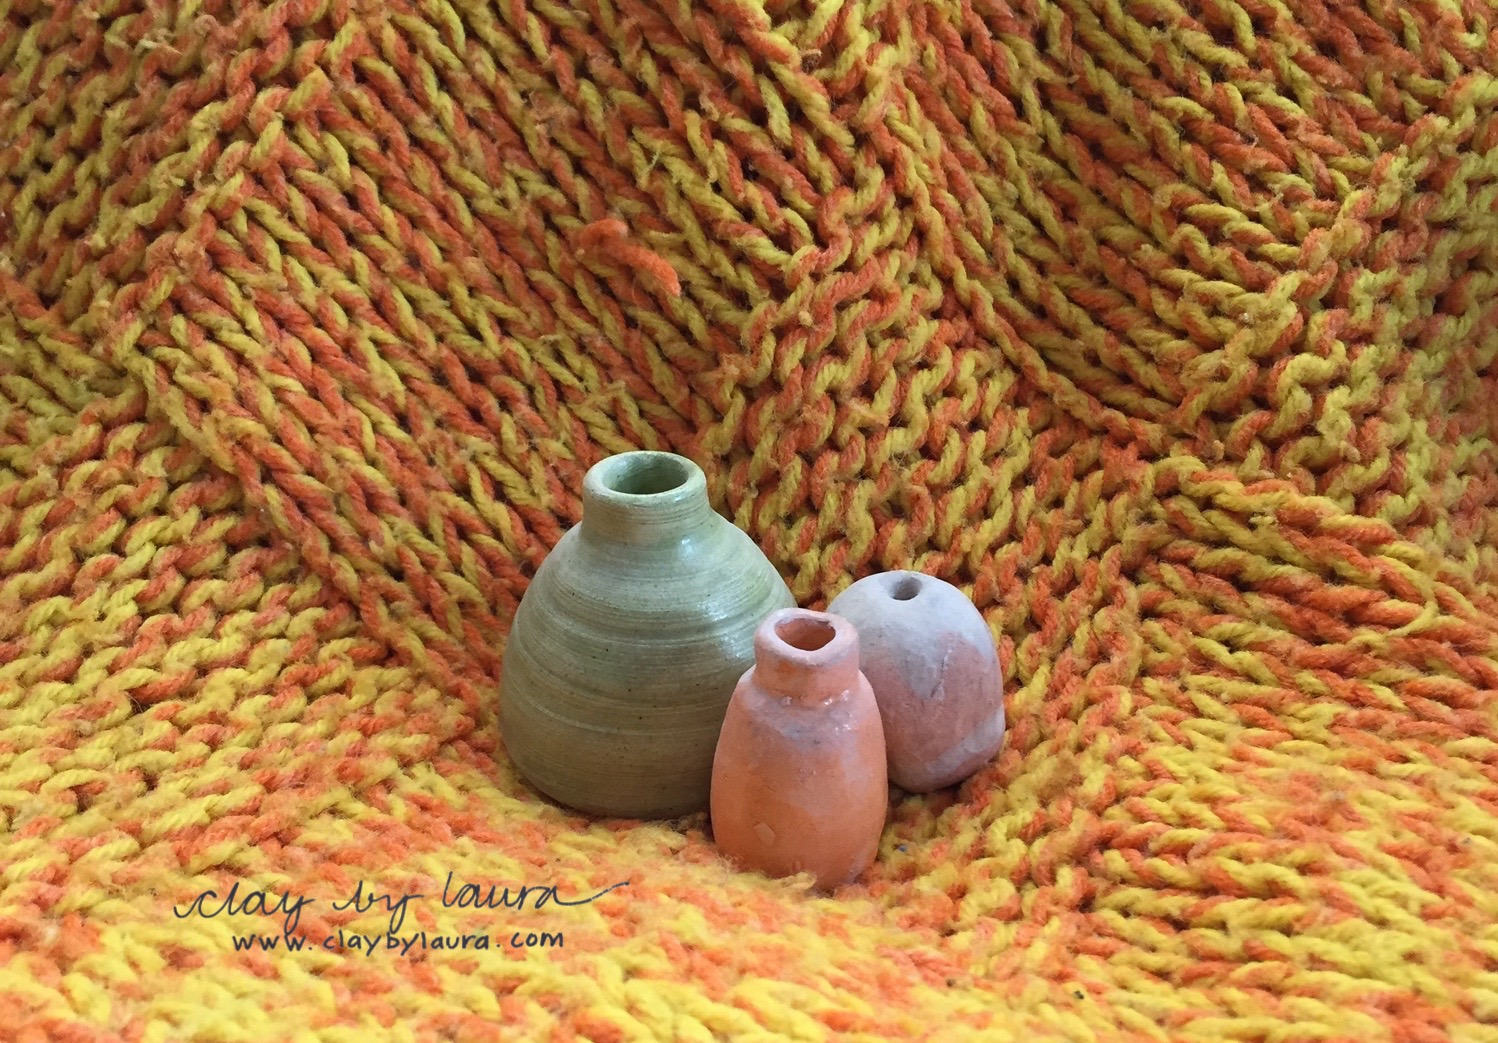 Here are some of my early yarn and clay projects.